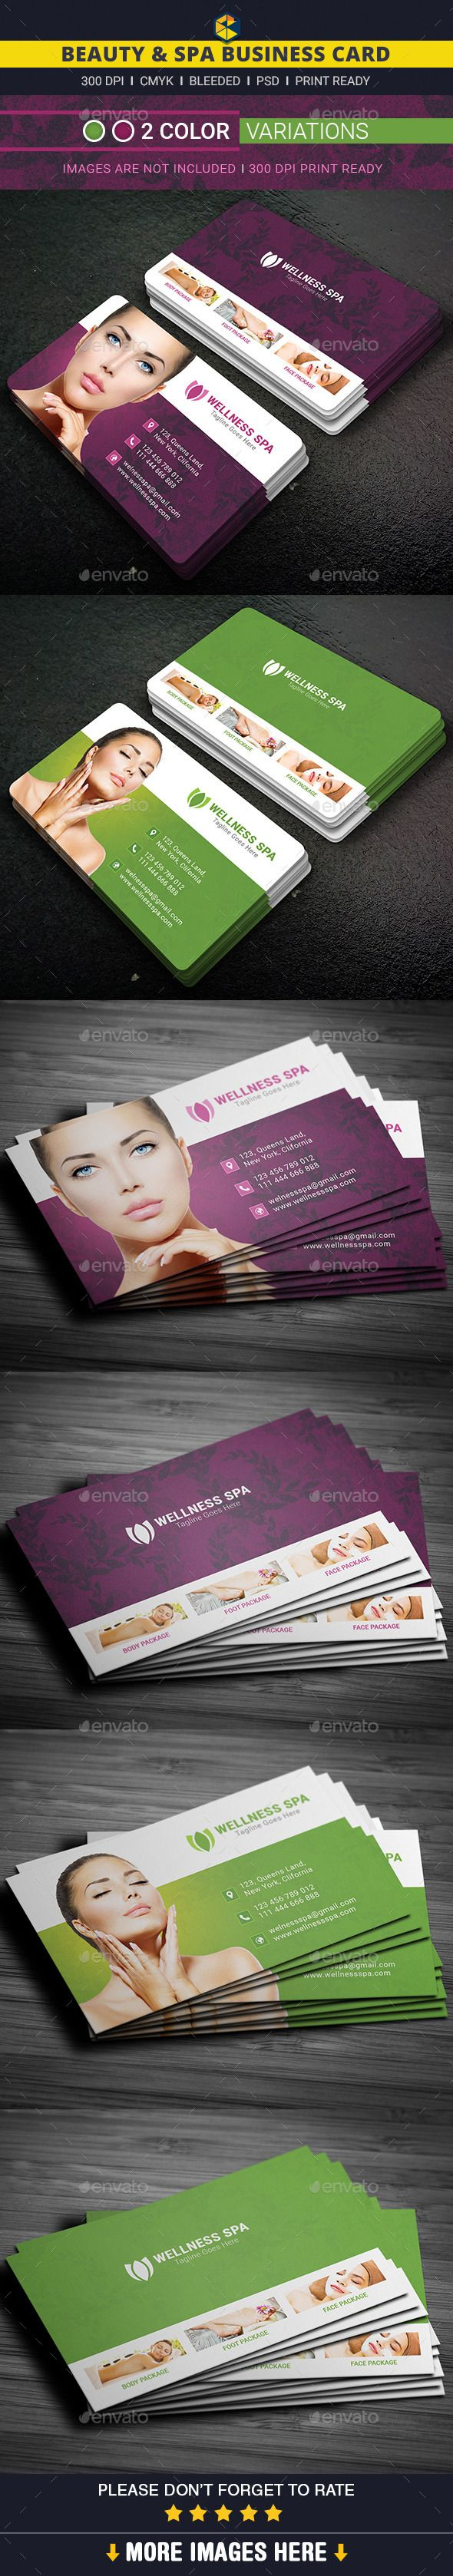 Beauty & Spa Business Card Template #design Download: http://graphicriver.net/item/beauty-spa-business-card/12095440?ref=ksioks